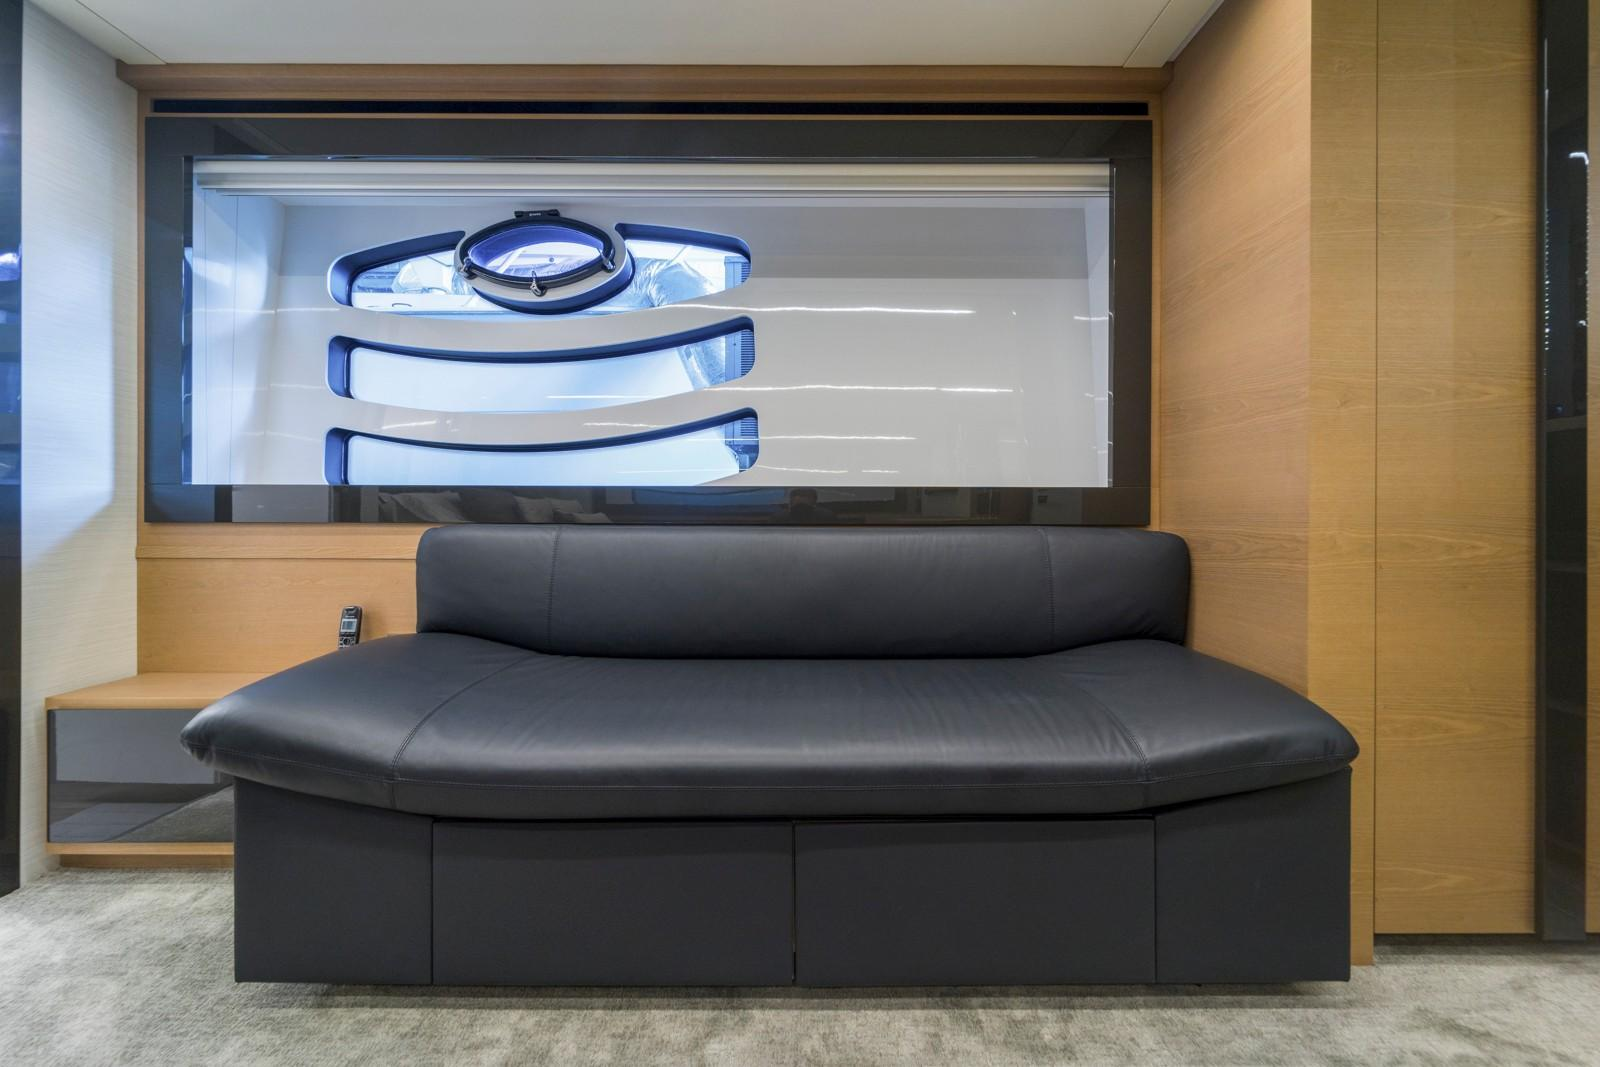 2015 Pershing 70- Master Couch